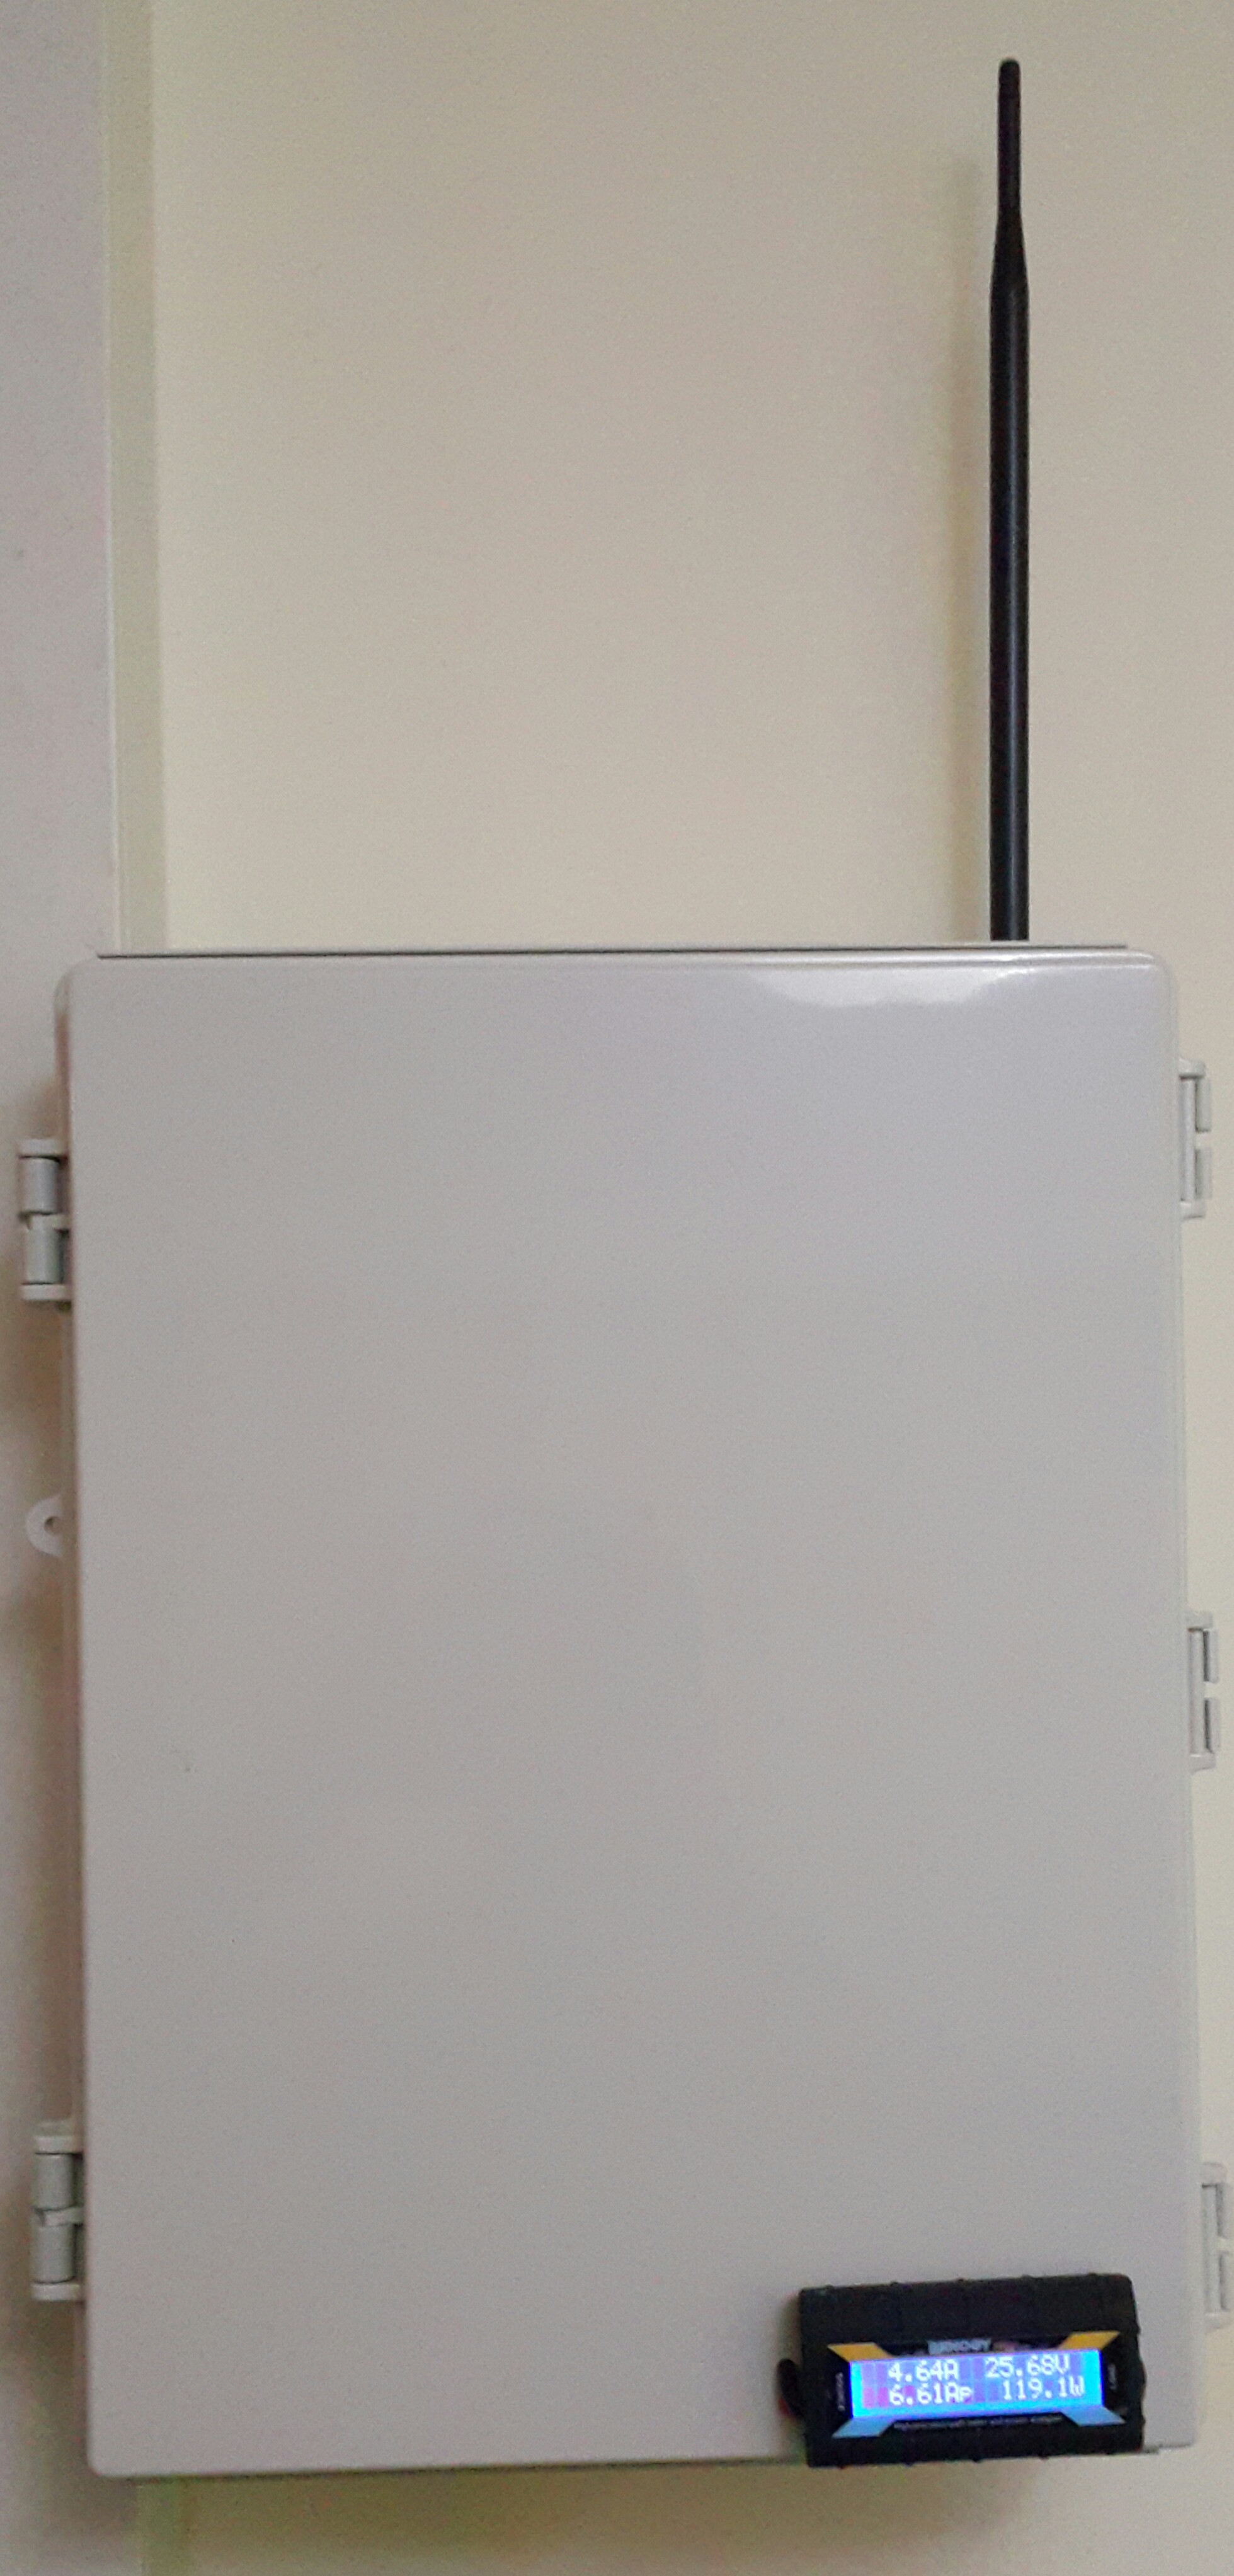 Picture of Unified Communication and Automation Cabinet.